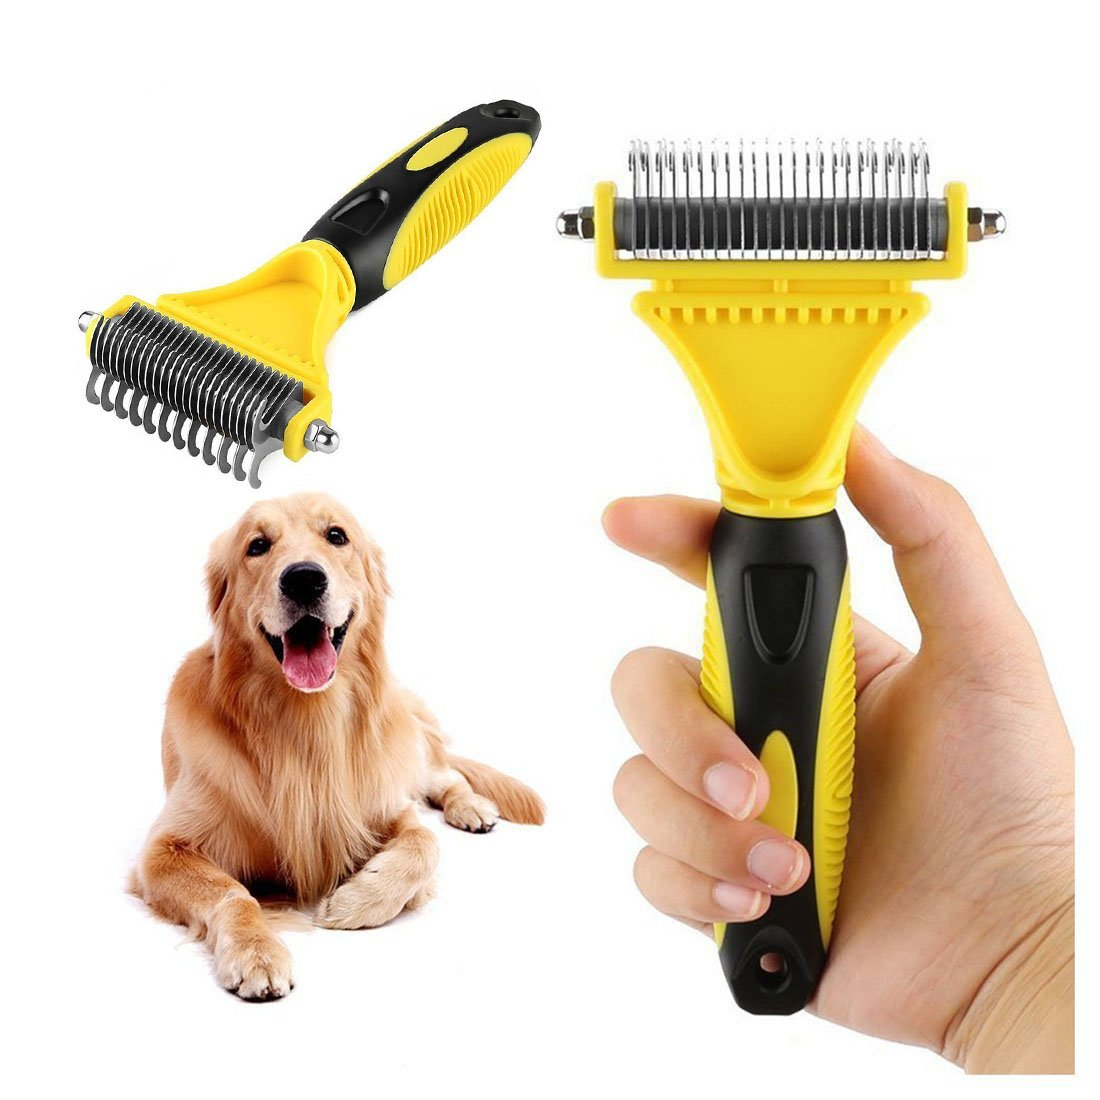 Goldsen Pet Dematting Comb, 2 Sided Undercoat Rake for Cats&Dogs Pet Grooming Tool Removes Undercoat Mats for Small Medium and Large Breeds with Medium and Long Hair for Pet Brush Tool by Goldsen (Image #1)